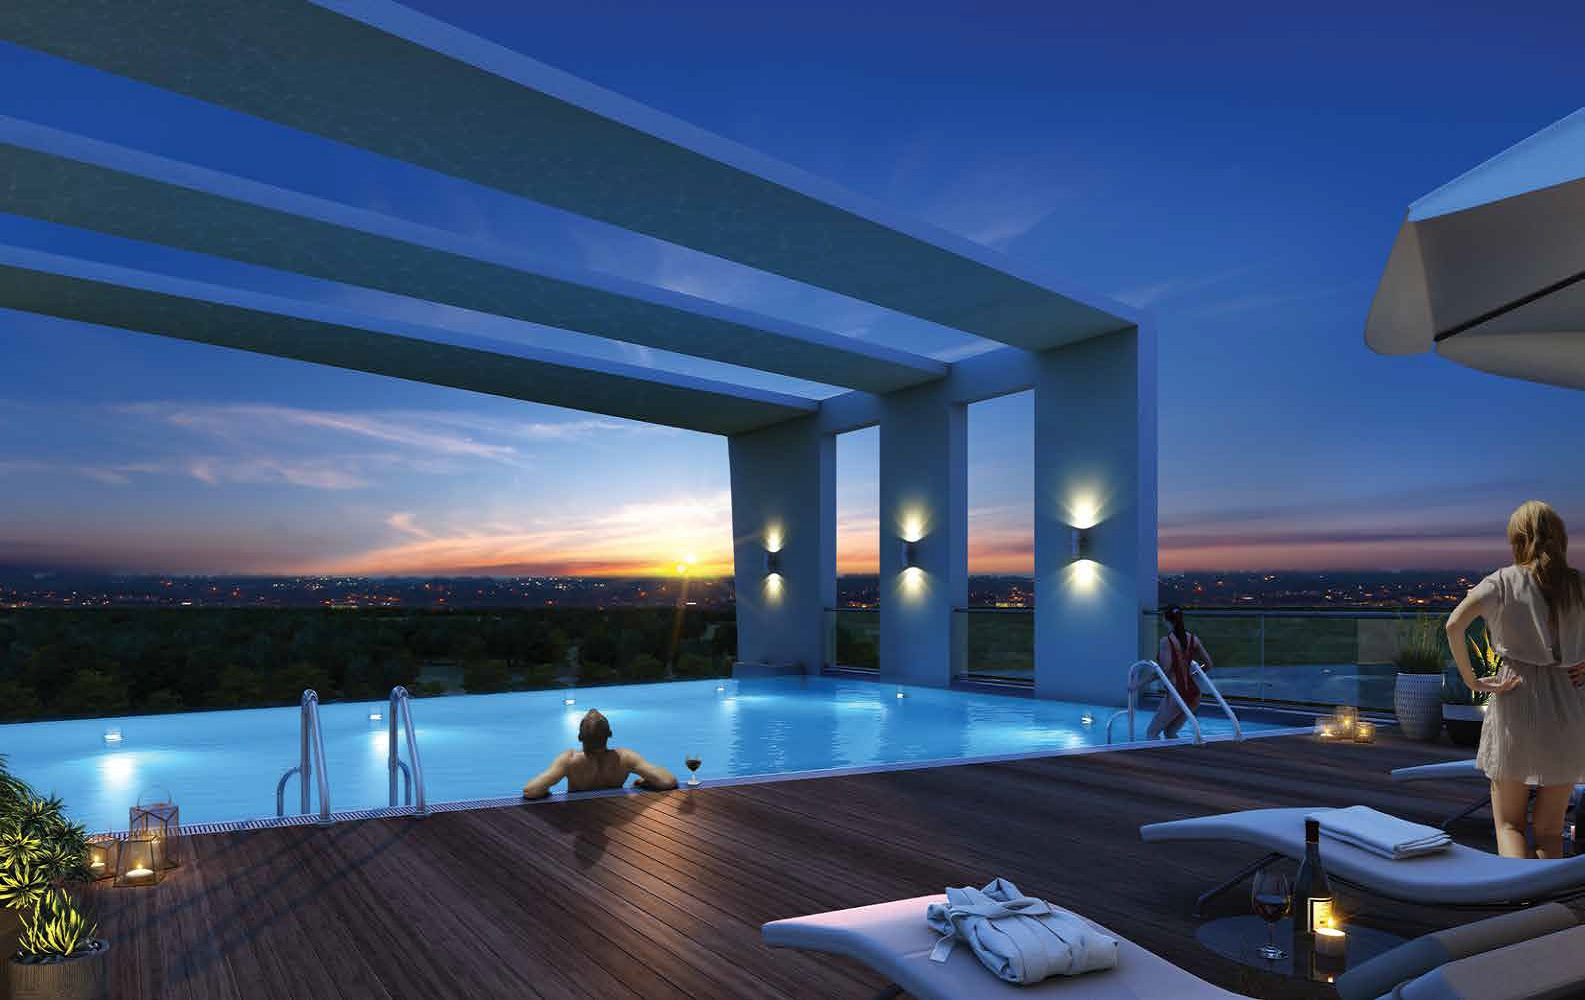 m3m natura project amenities features17